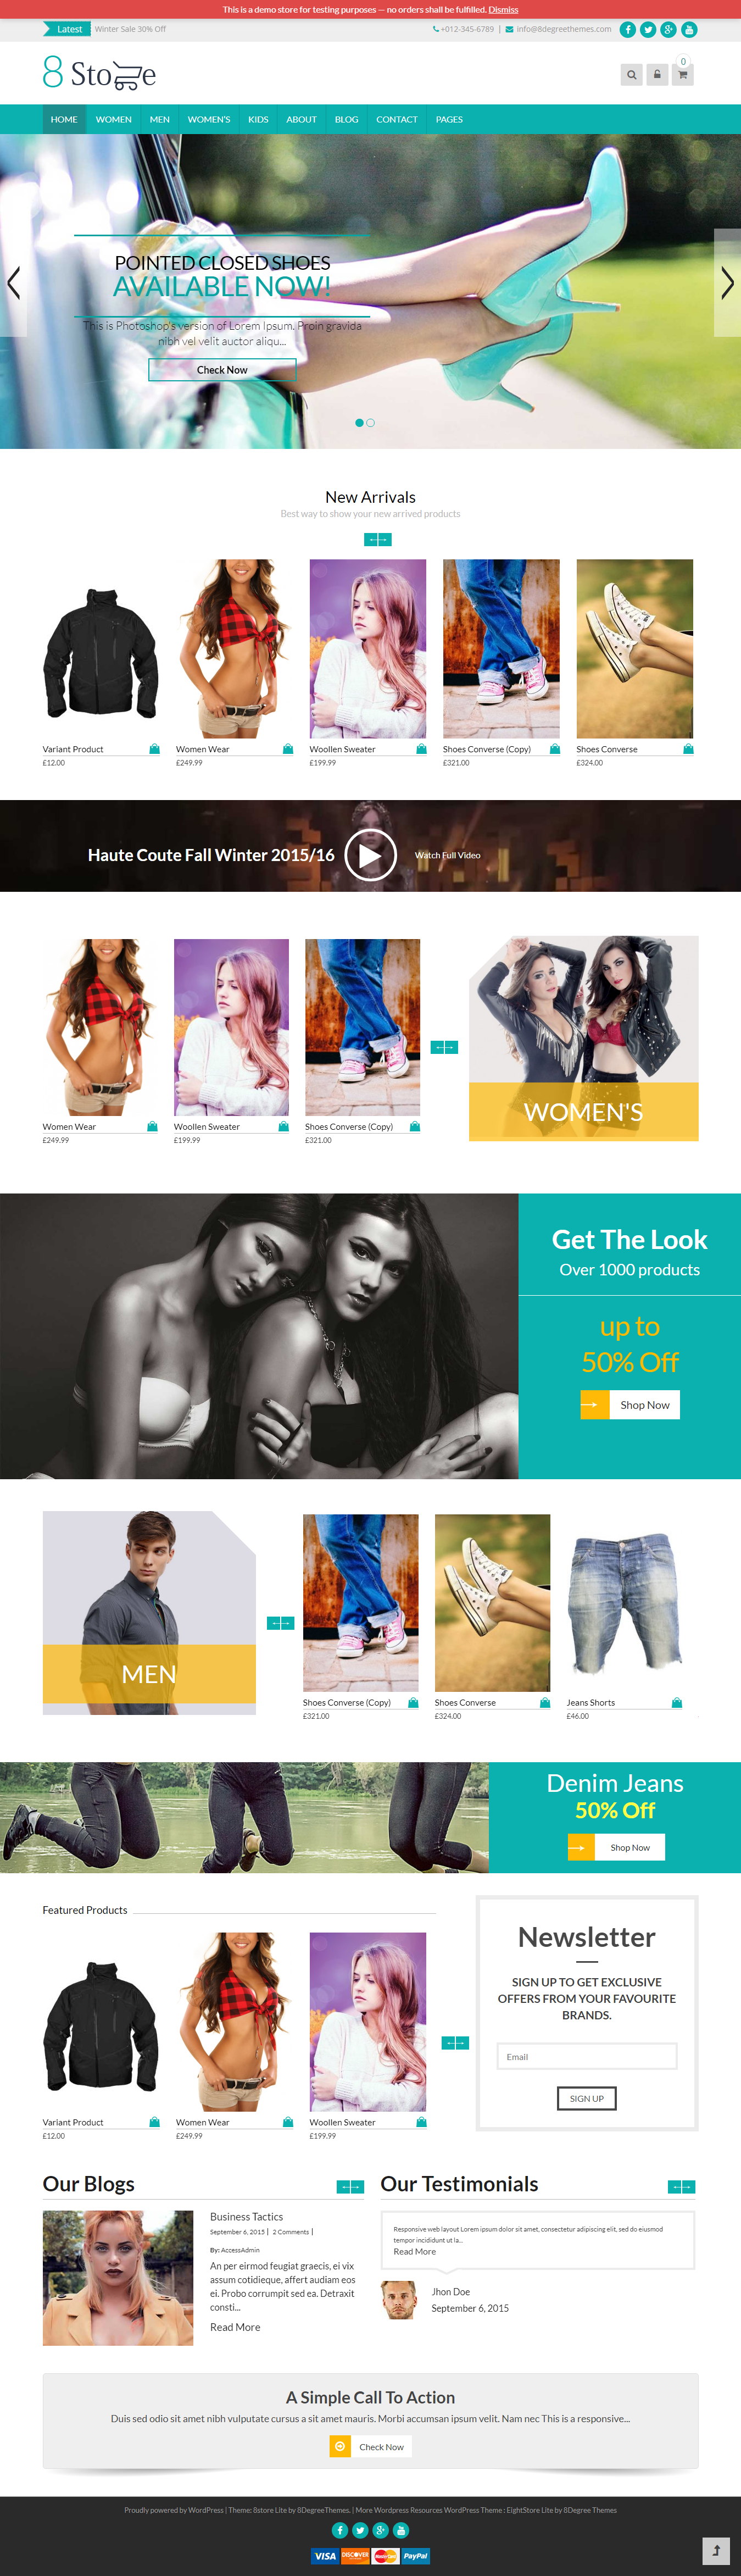 8store Lite - Best Free Retail Shop WordPress Themes